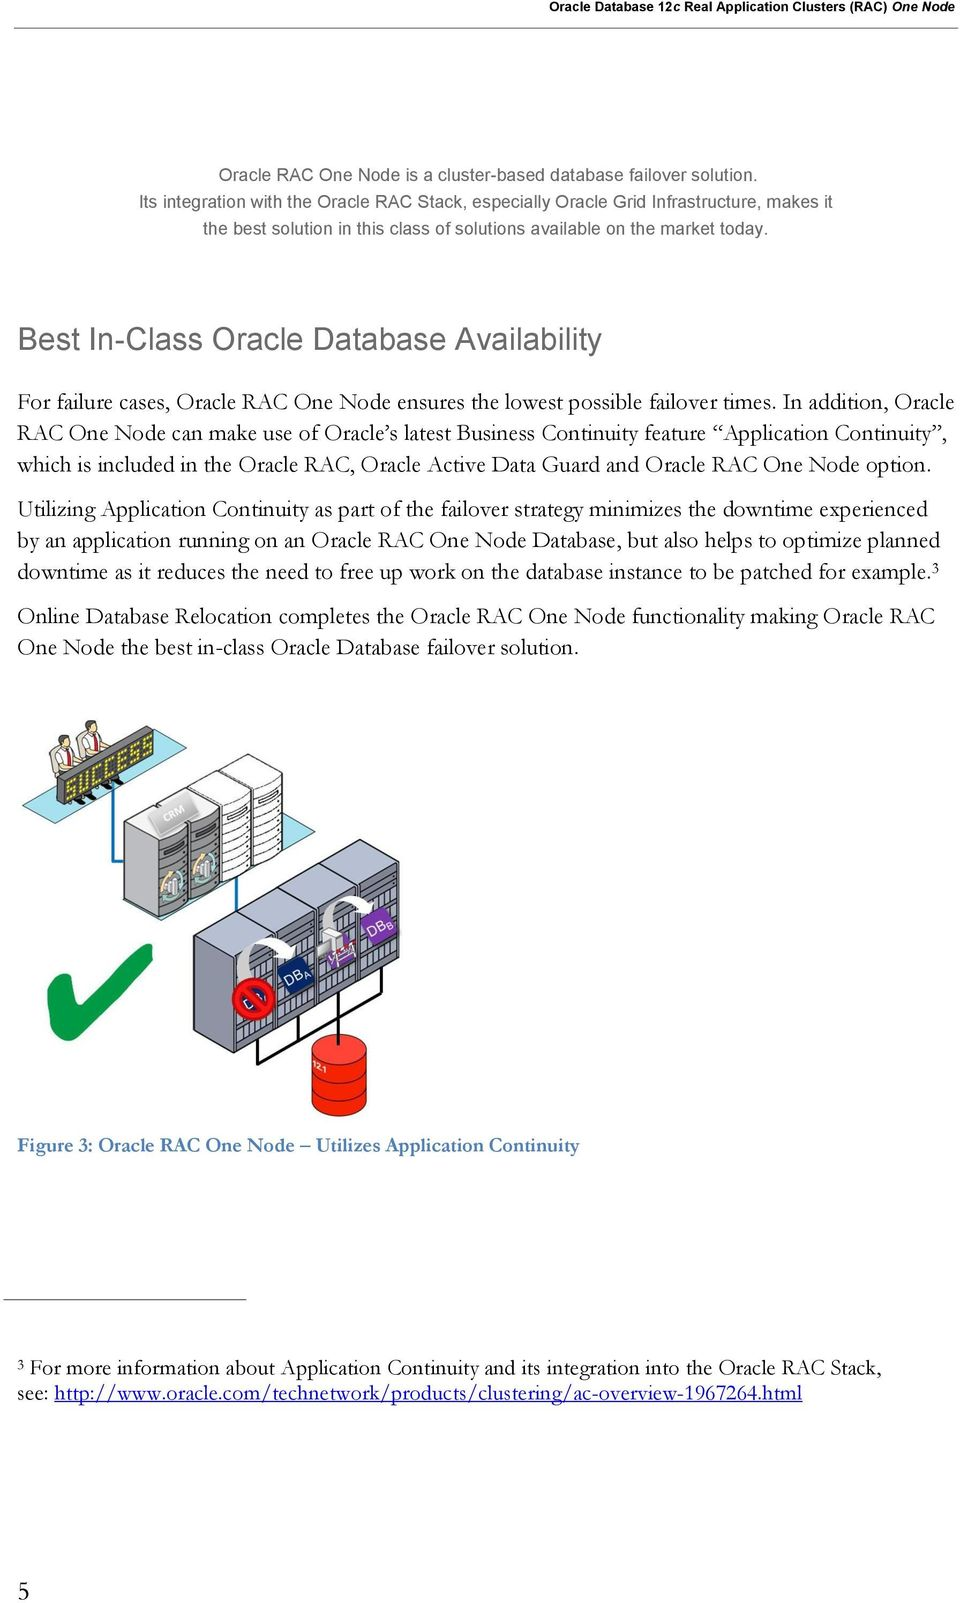 Best In-Class Oracle Database Availability For failure cases, Oracle RAC One Node ensures the lowest possible failover times.